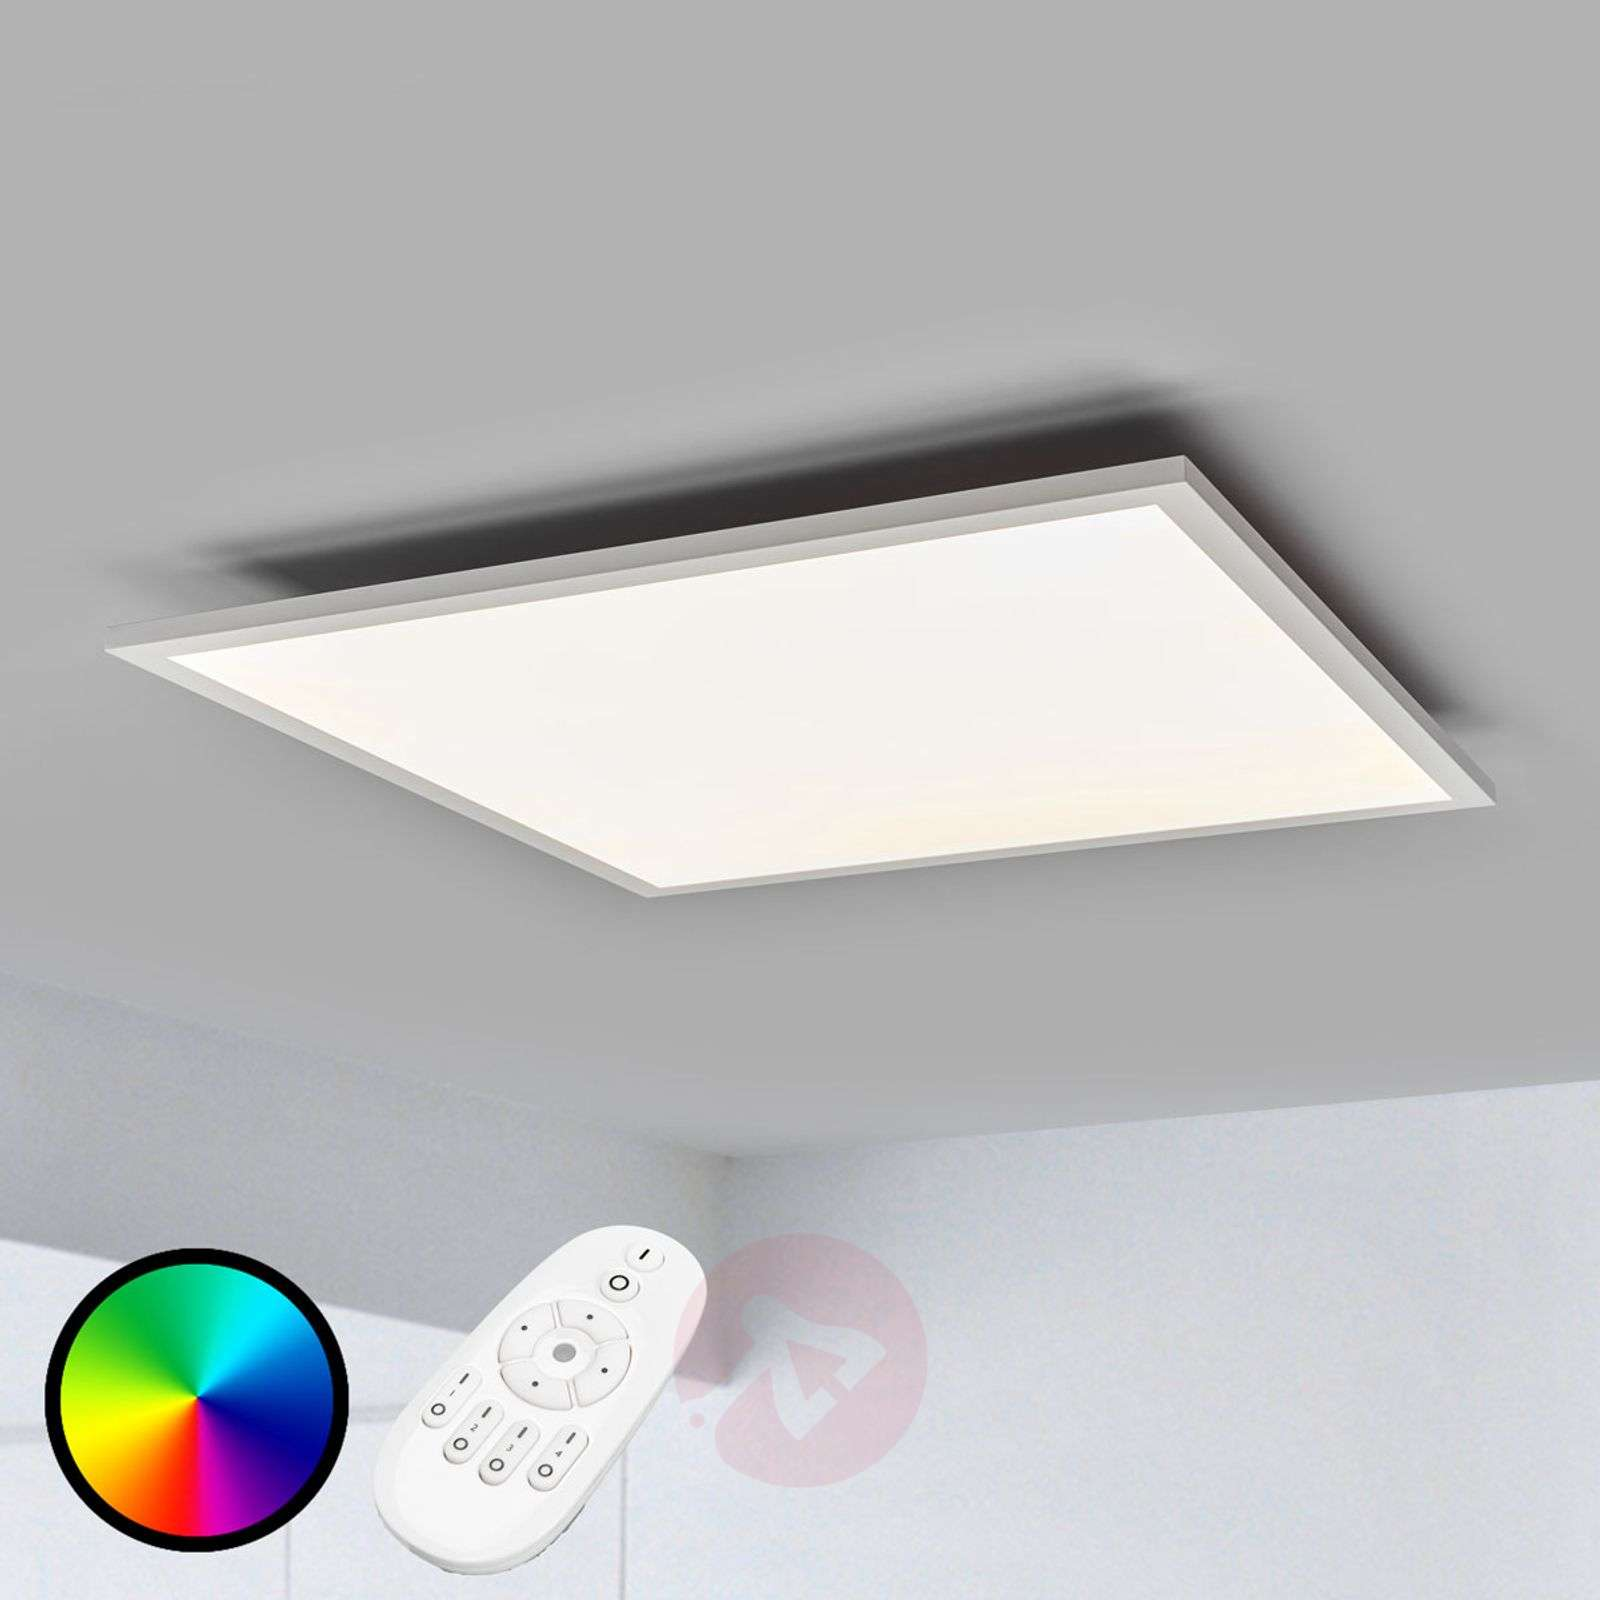 Milian, panel LED RGB con mando a distancia, 62 cm-7620029-02